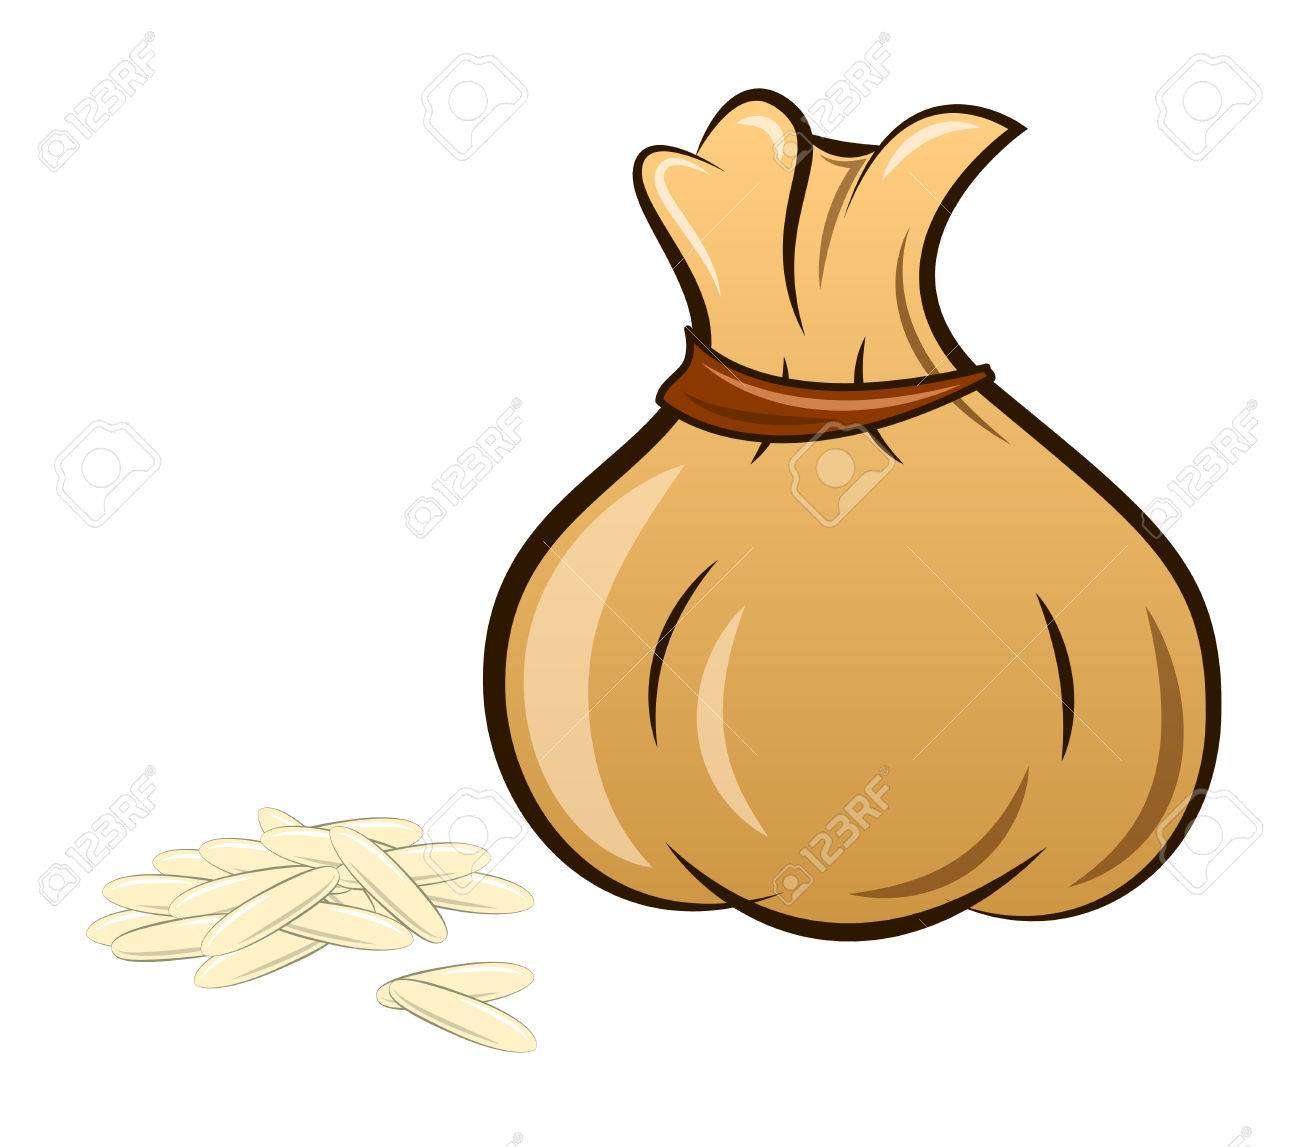 filled rice bag on white background, vector.